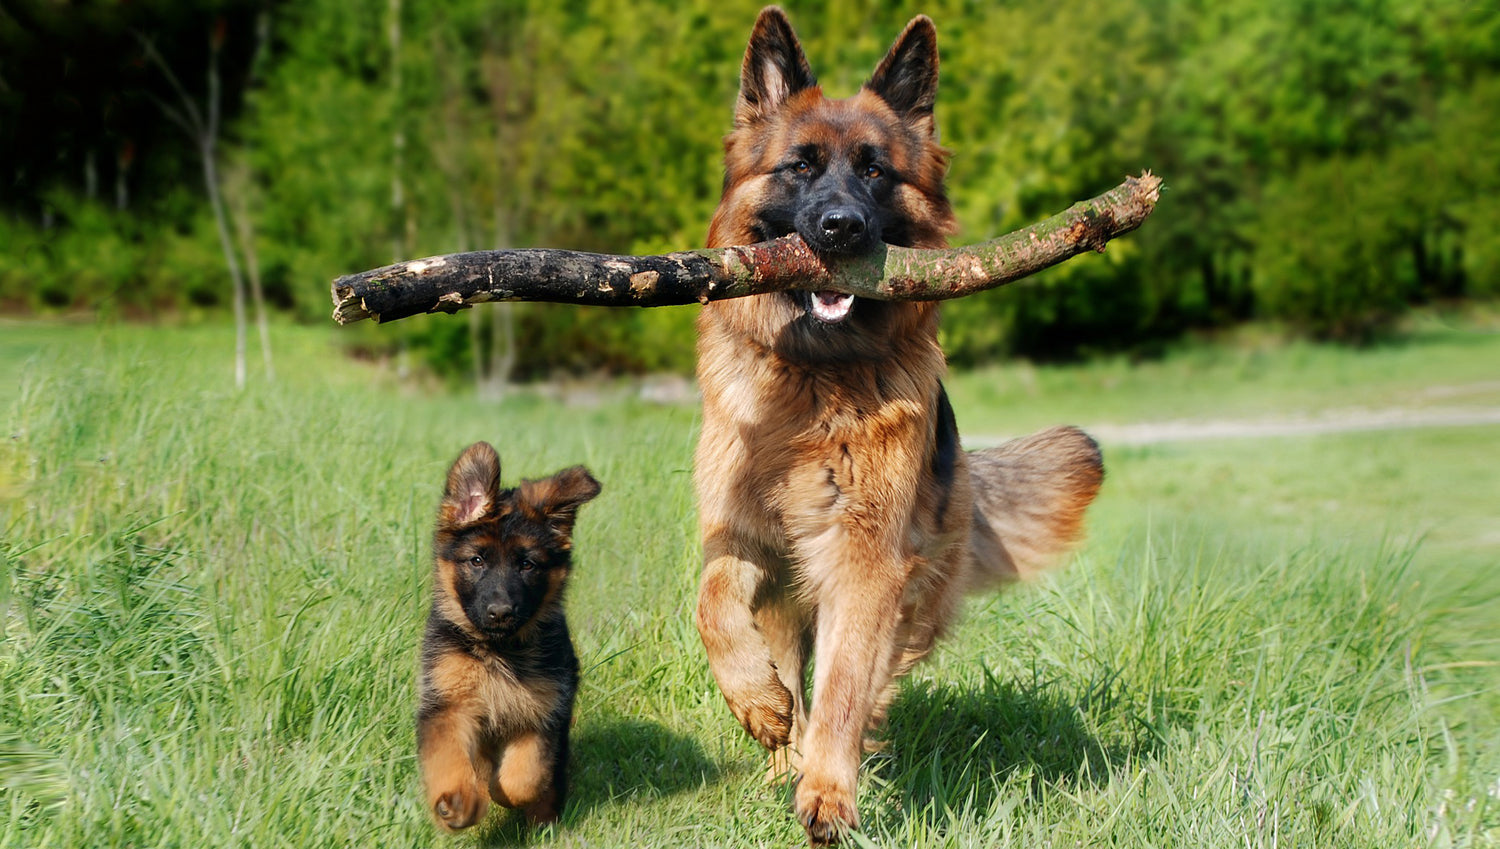 German Shepherd puppy and adult dog running in grass with adult dog carrying a large branch